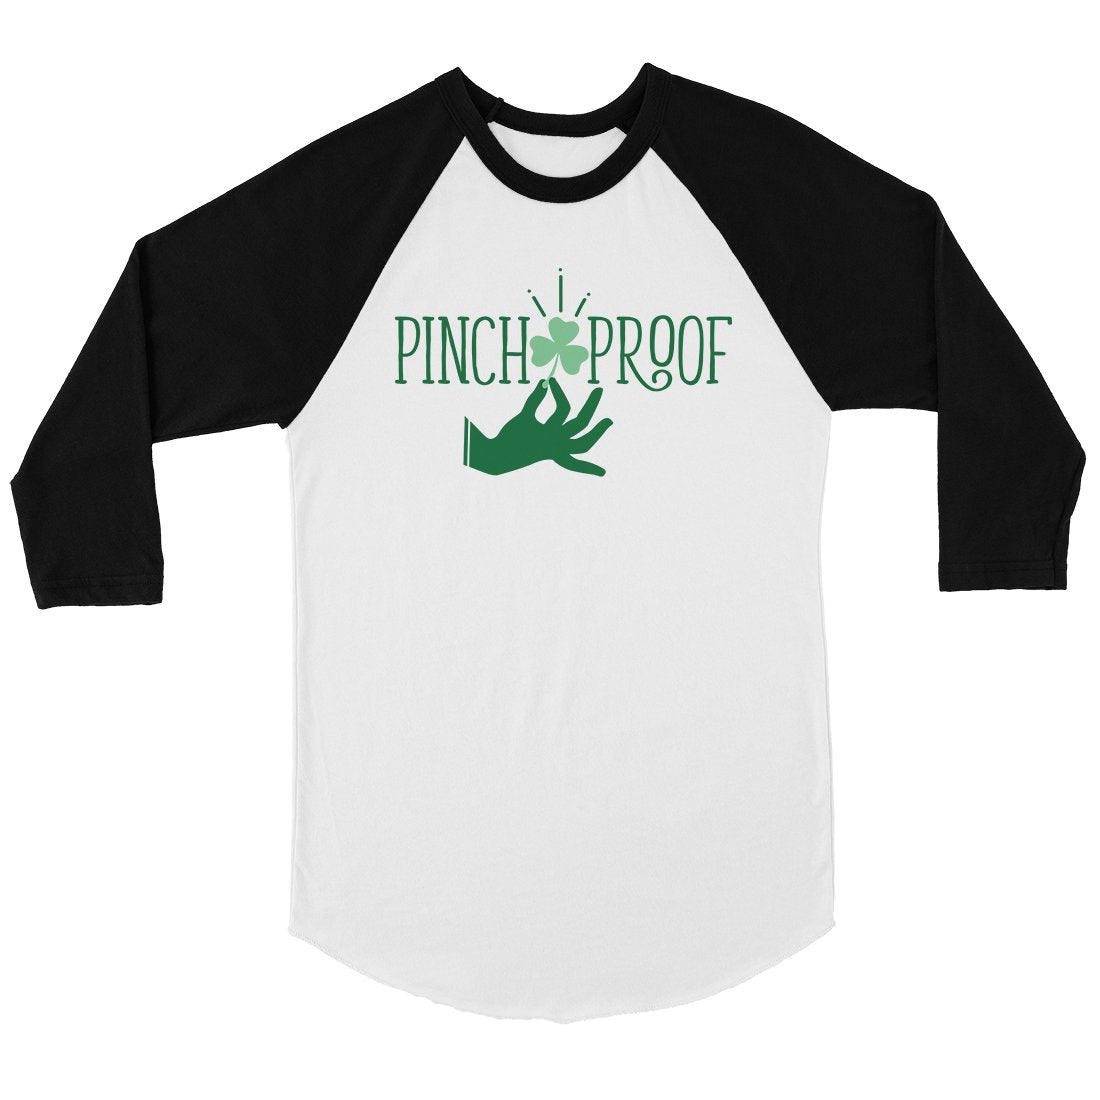 Pinch Proof Clover Womens Baseball Tee For St Patrick's Day Shirt